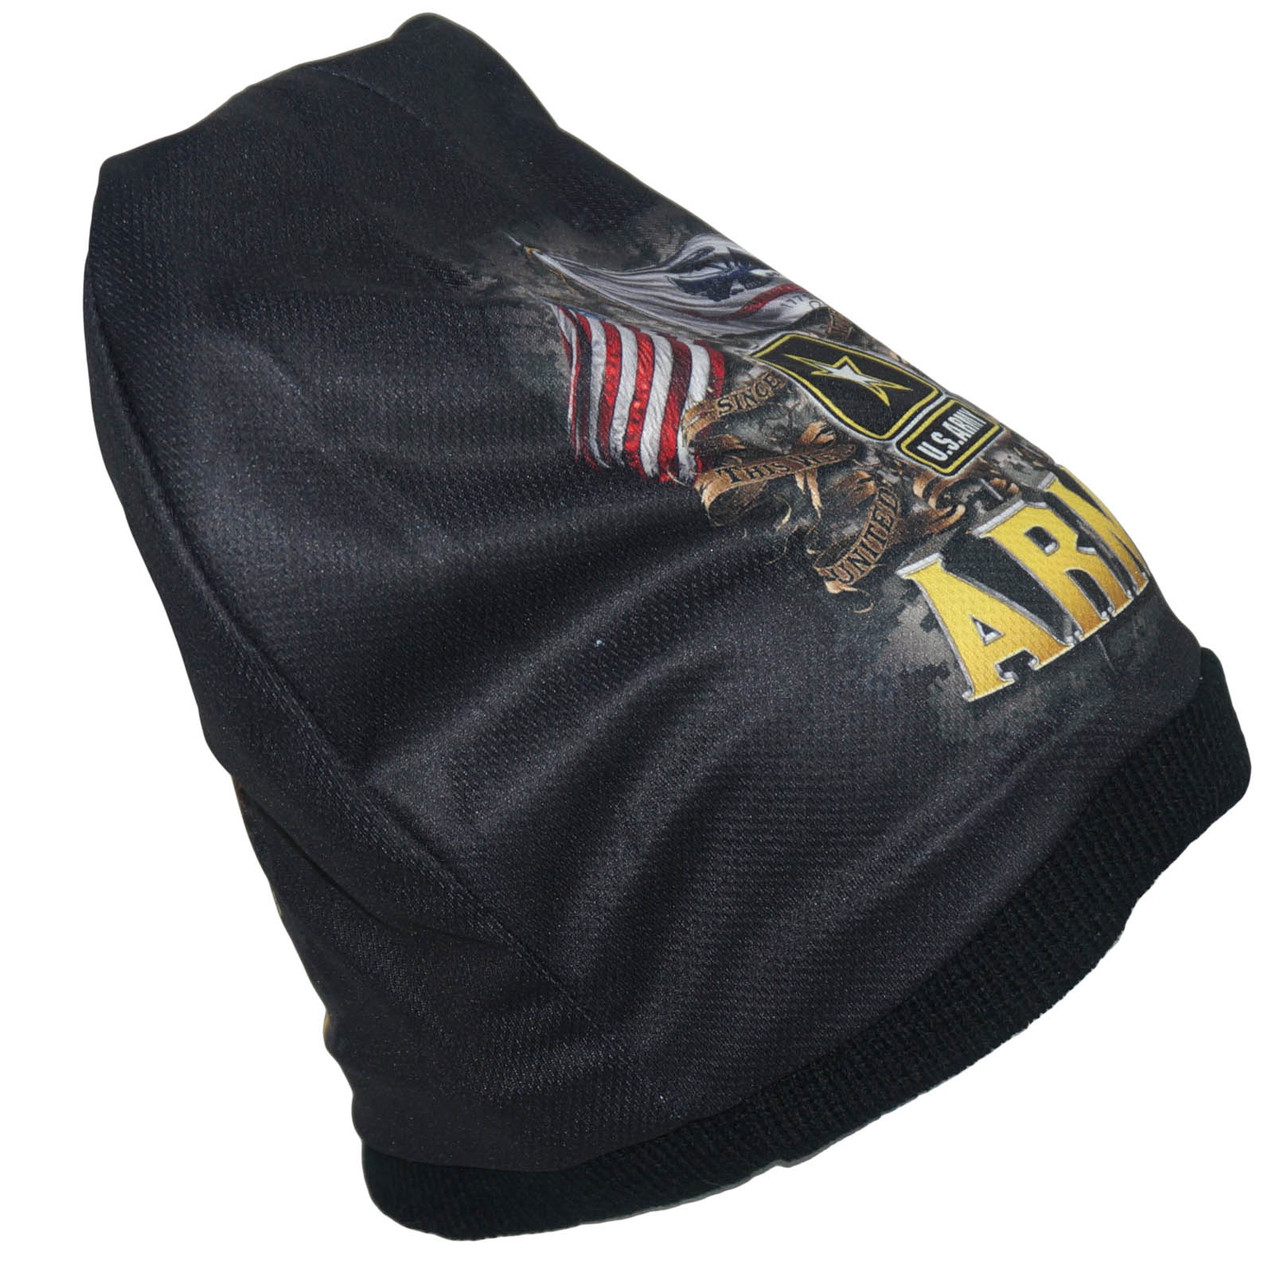 http://d3d71ba2asa5oz.cloudfront.net/12013655/images/amm-mm2151-er6%20army%20double%20flags%20beanie%20%20(4).jpg